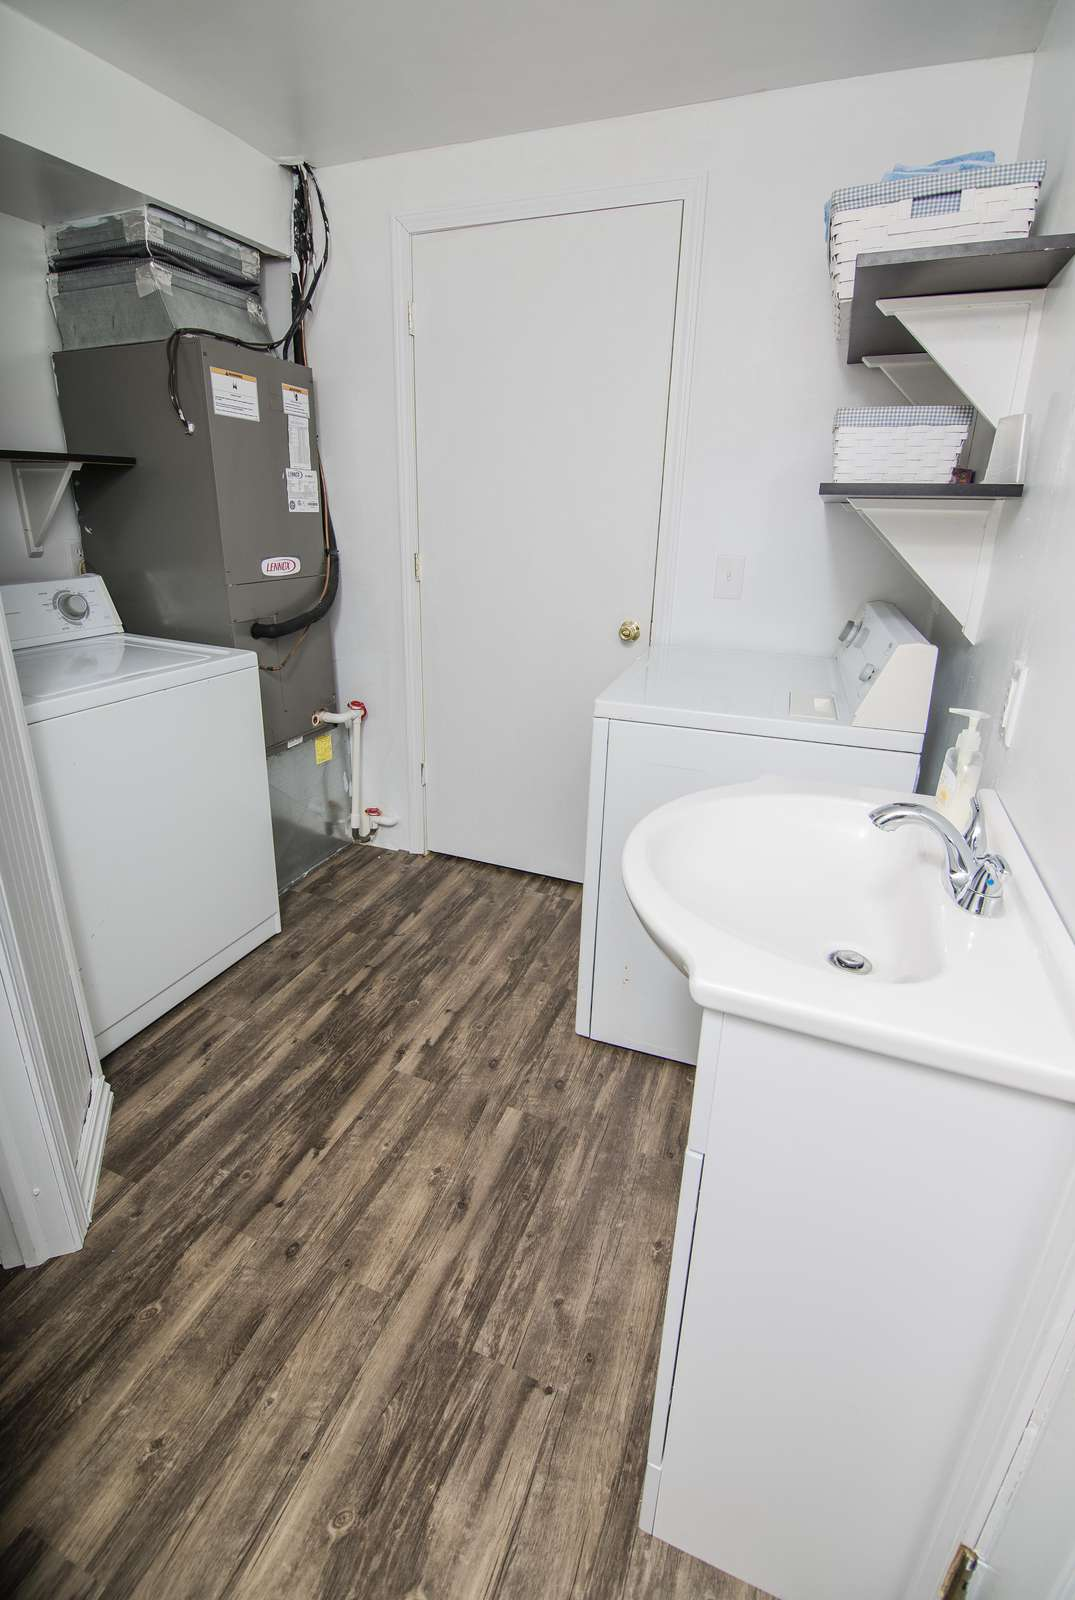 Full size washer and dryer in laundry/washroom